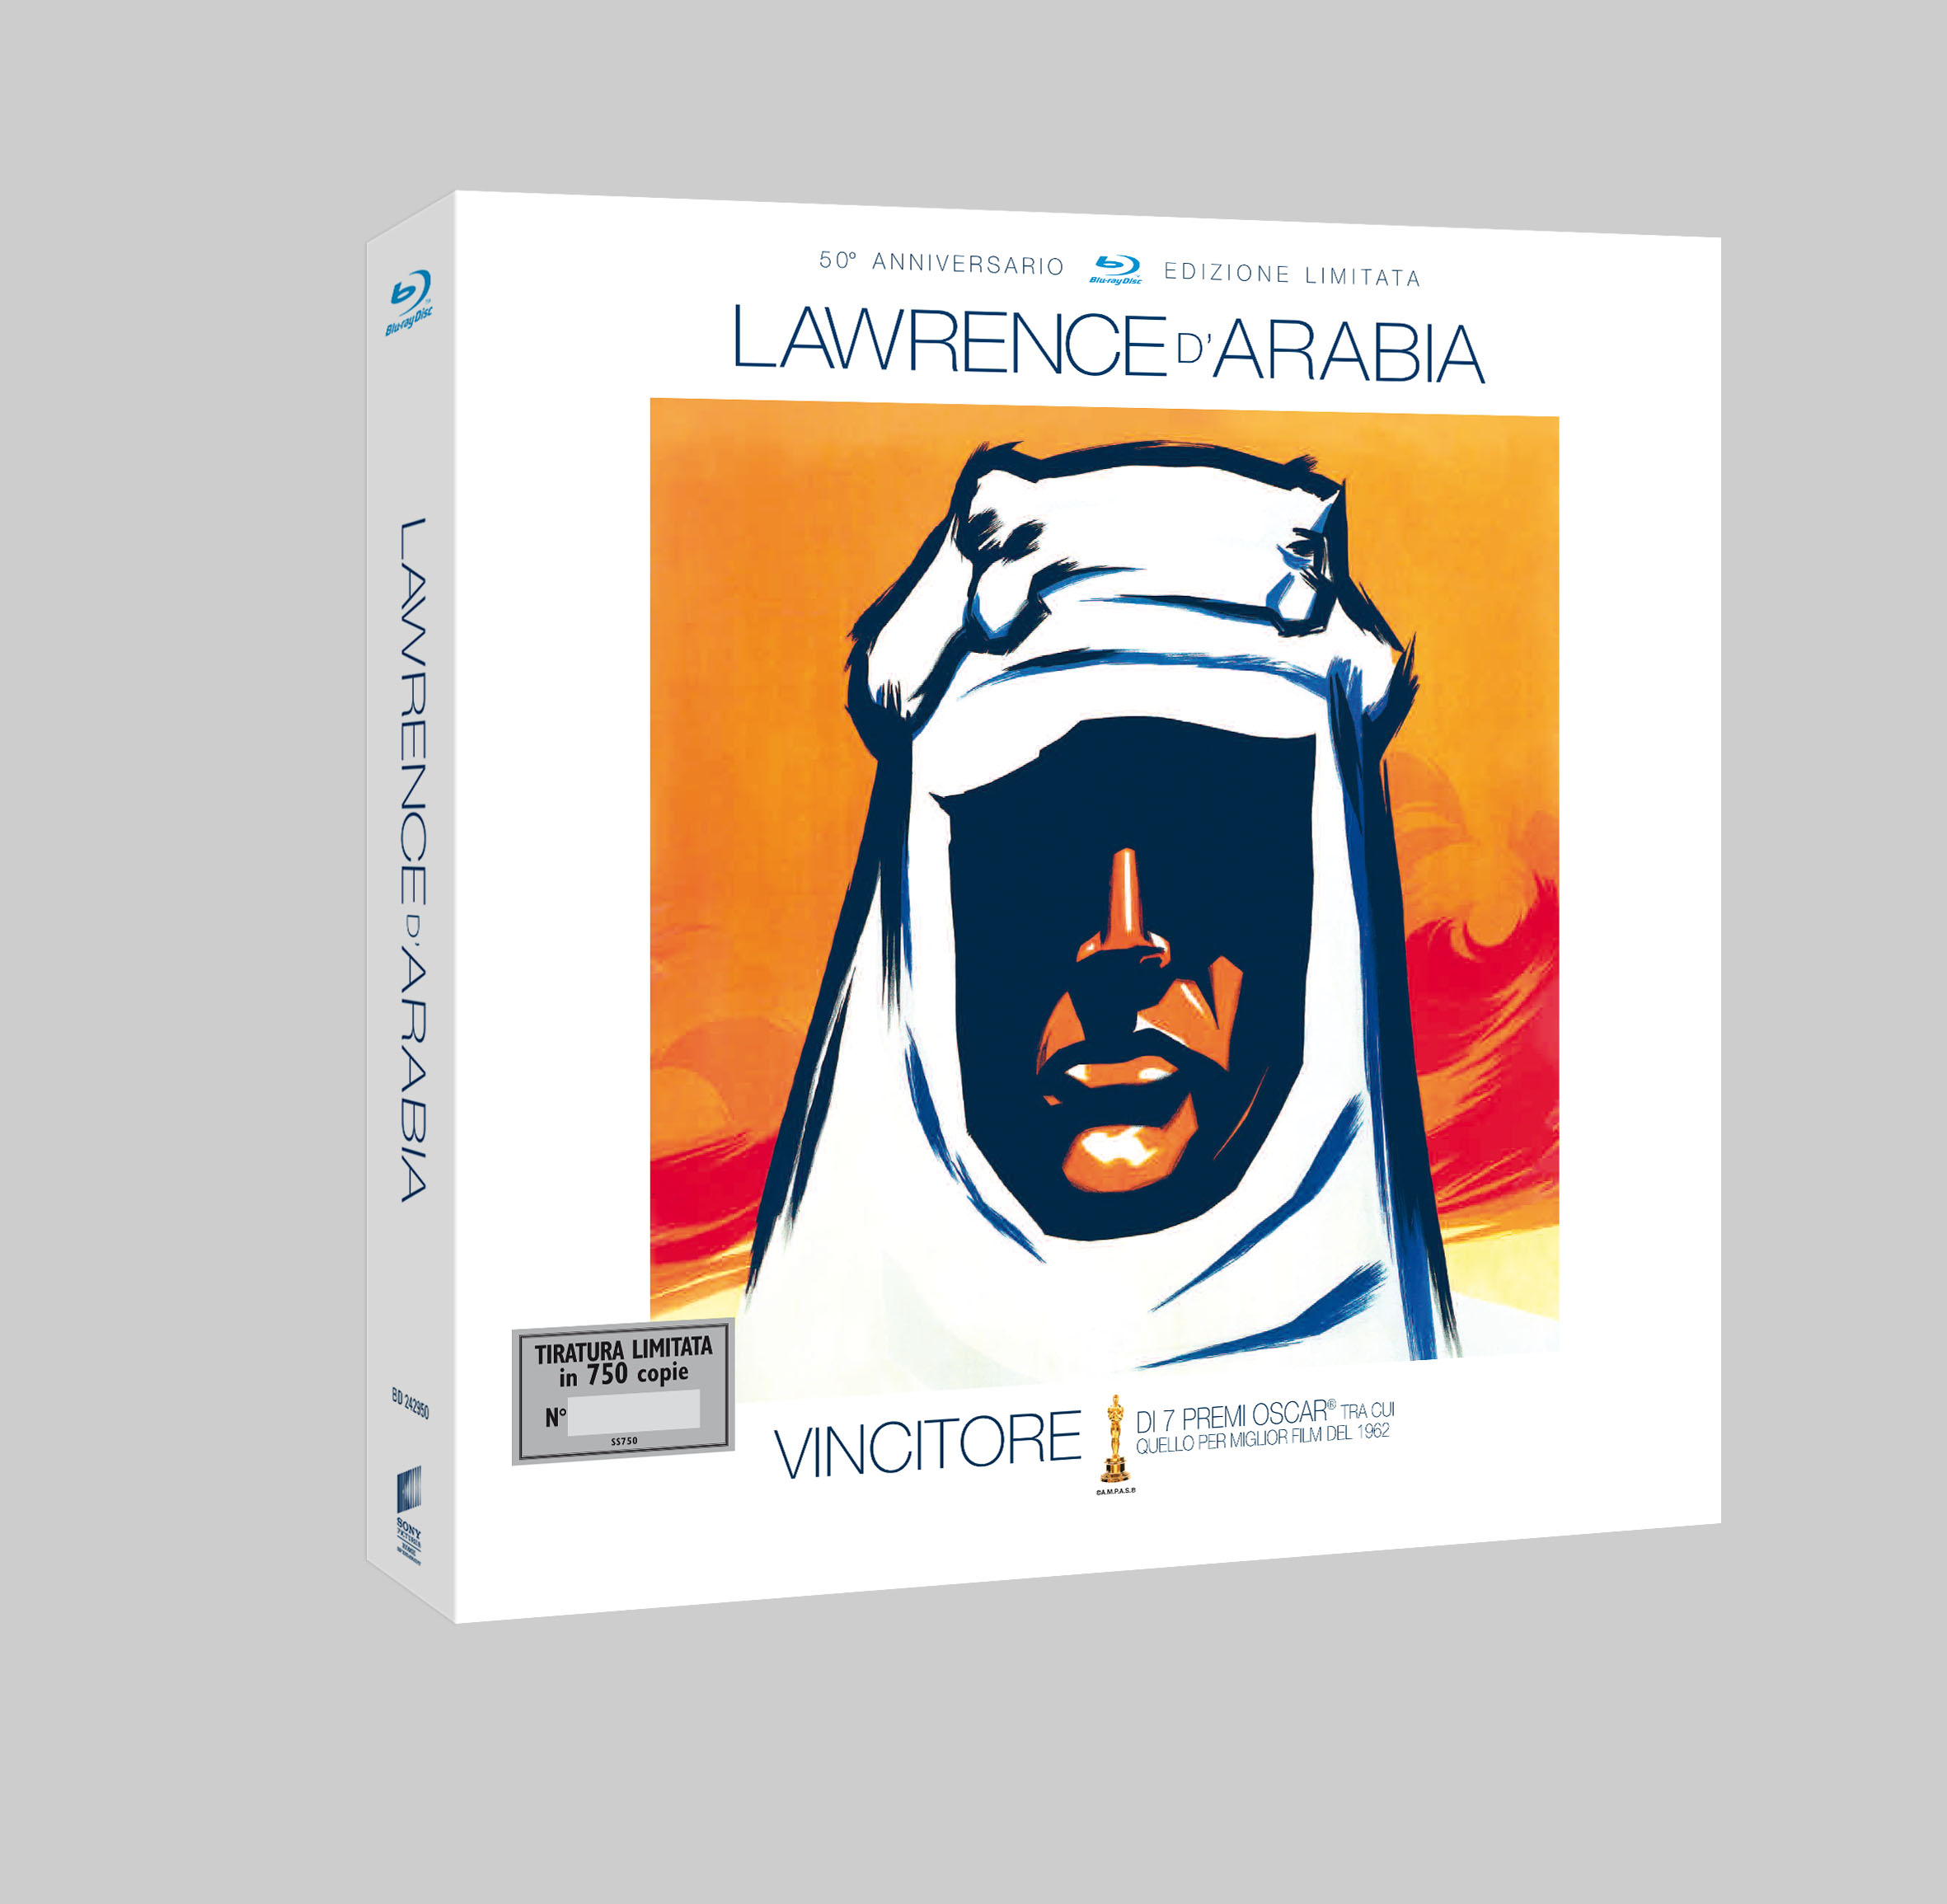 Lawrence d'arabia limited edition blu-ray